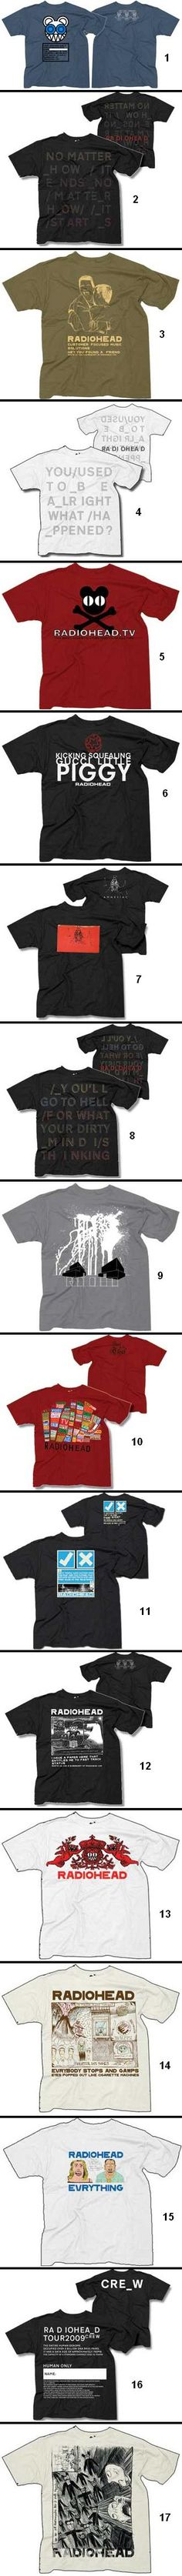 Radiohead shirts. Gotta catch 'em all!